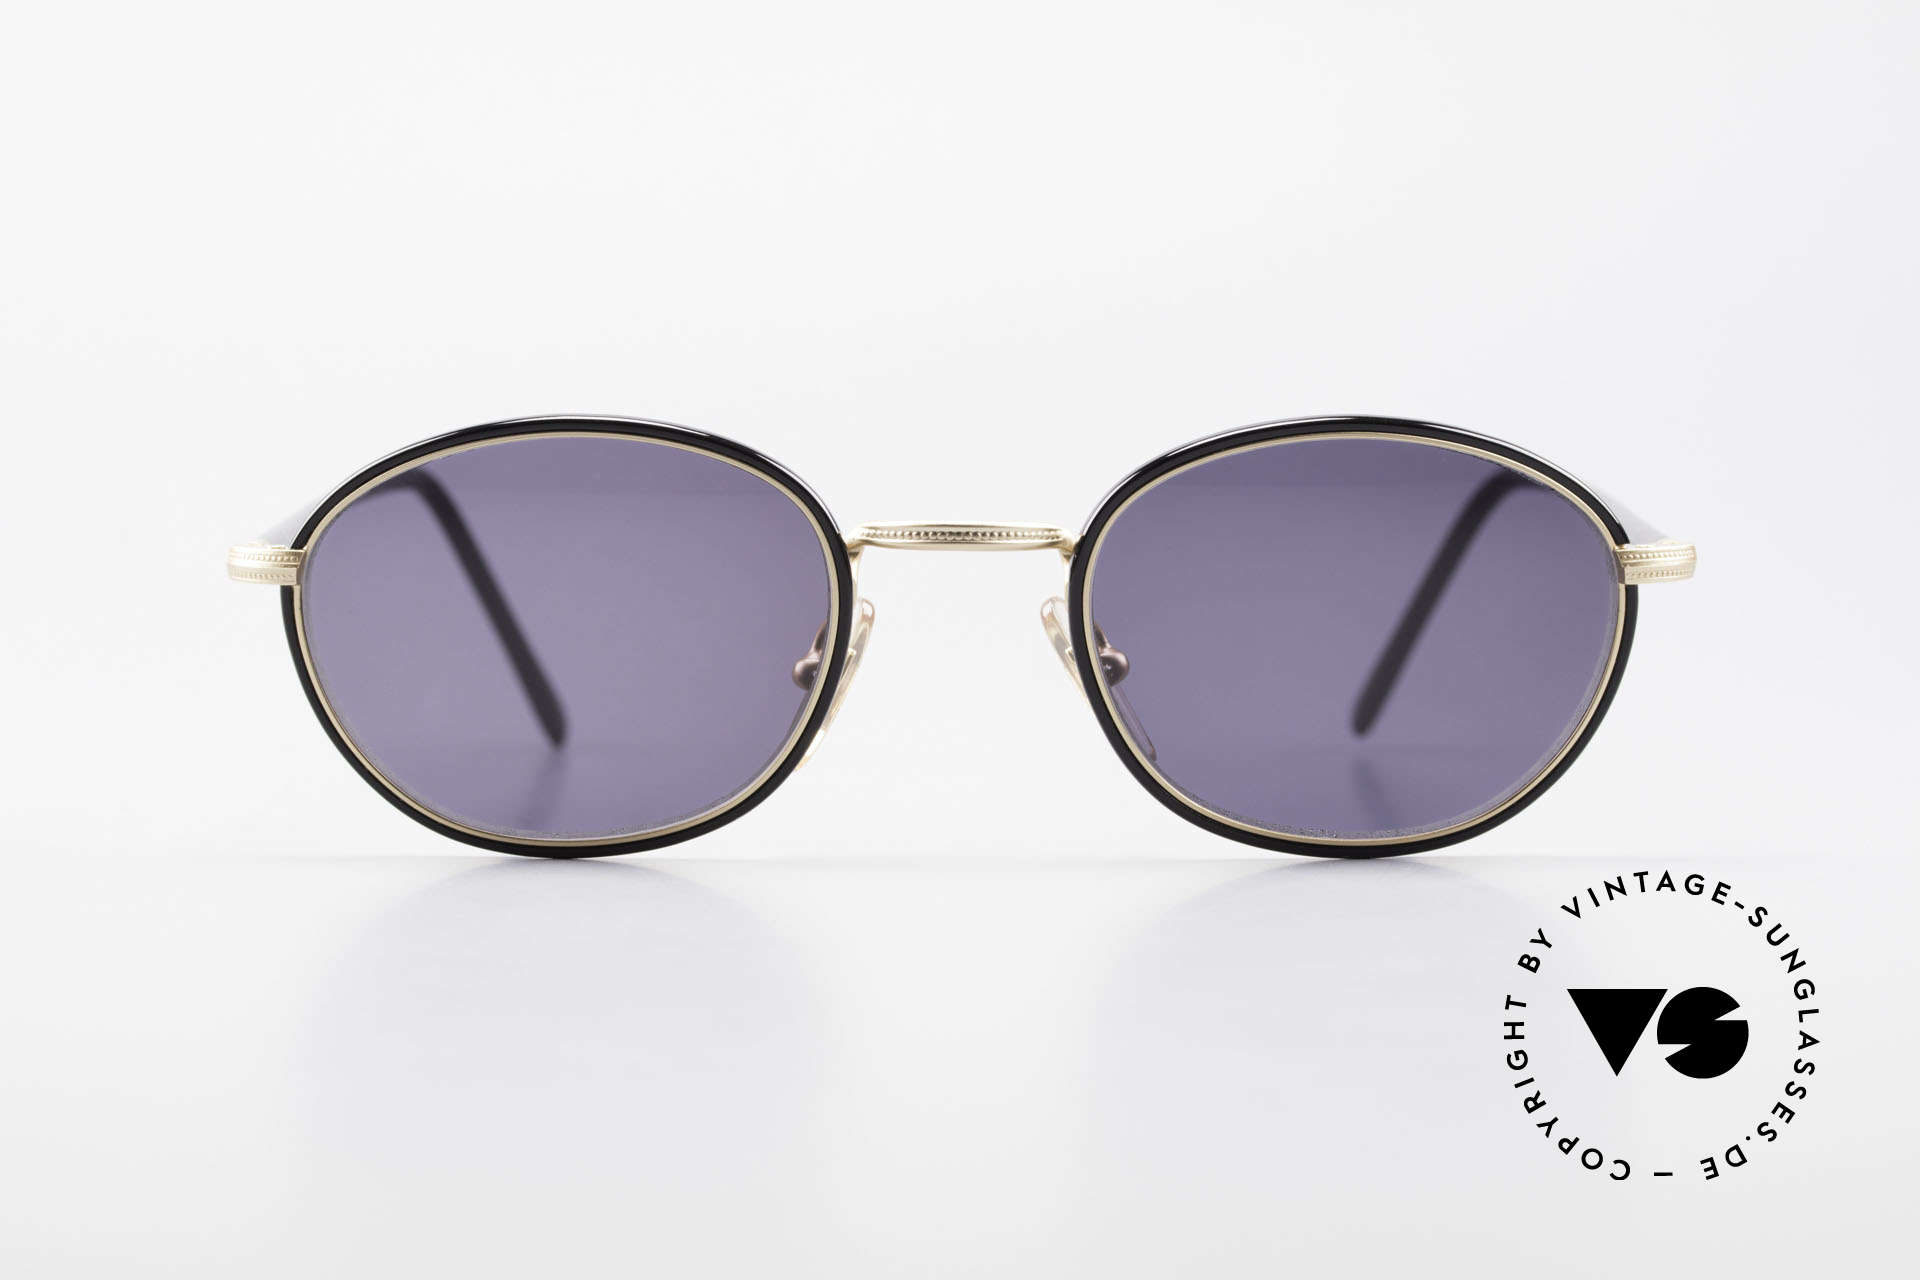 Cutler And Gross 0394 Classic Vintage Sunglasses, classic, timeless UNDERSTATEMENT luxury sunglasses, Made for Men and Women